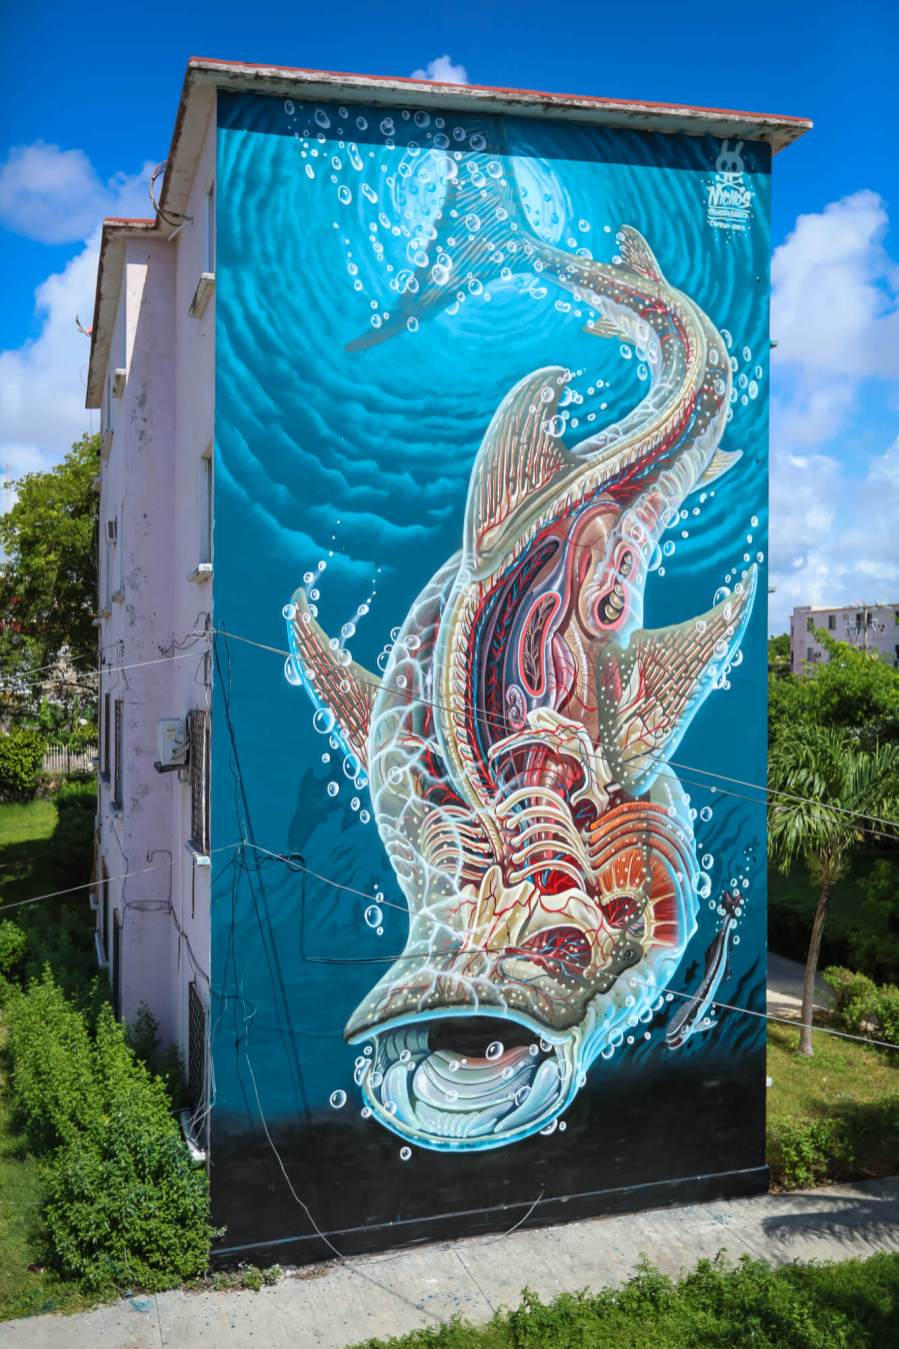 Nychos, Sea Walls: Artists for Oceans Street art festival Cancun, Mexico 2017. Photo Credit Tre' Packard.